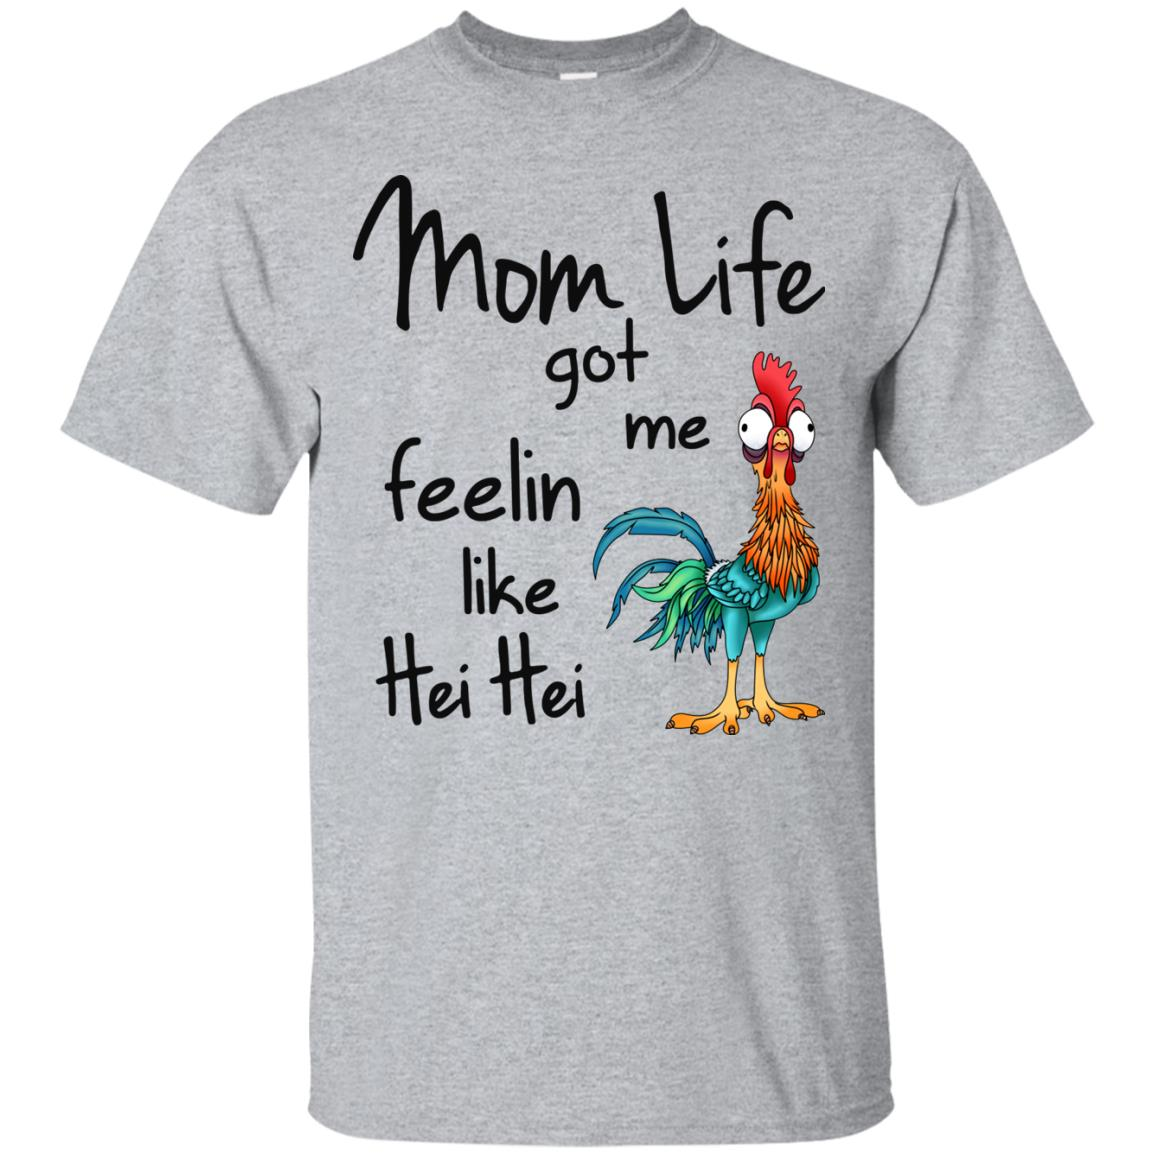 518dcb3a Mom Life Got Me Feelin Like Hei Hei t shirt, long sleeve, hoodie ...